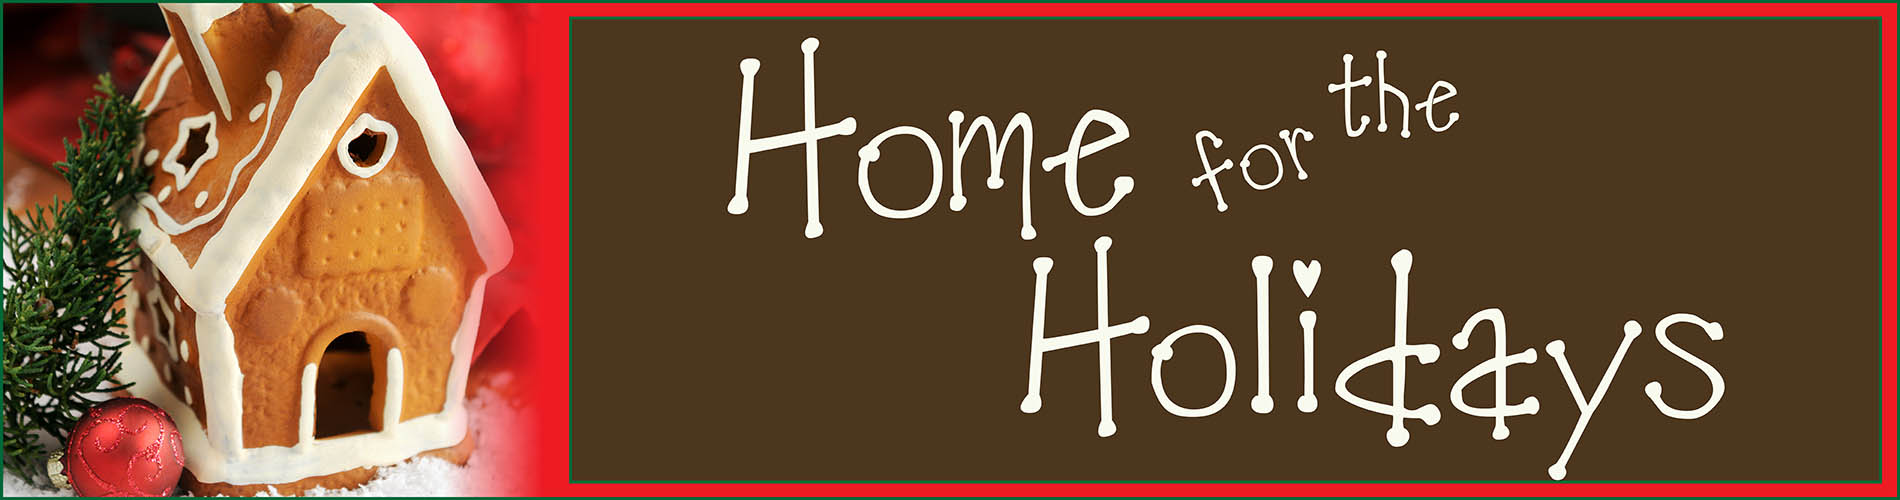 Home for the Holidays Sales Event at Seland's Karpetland